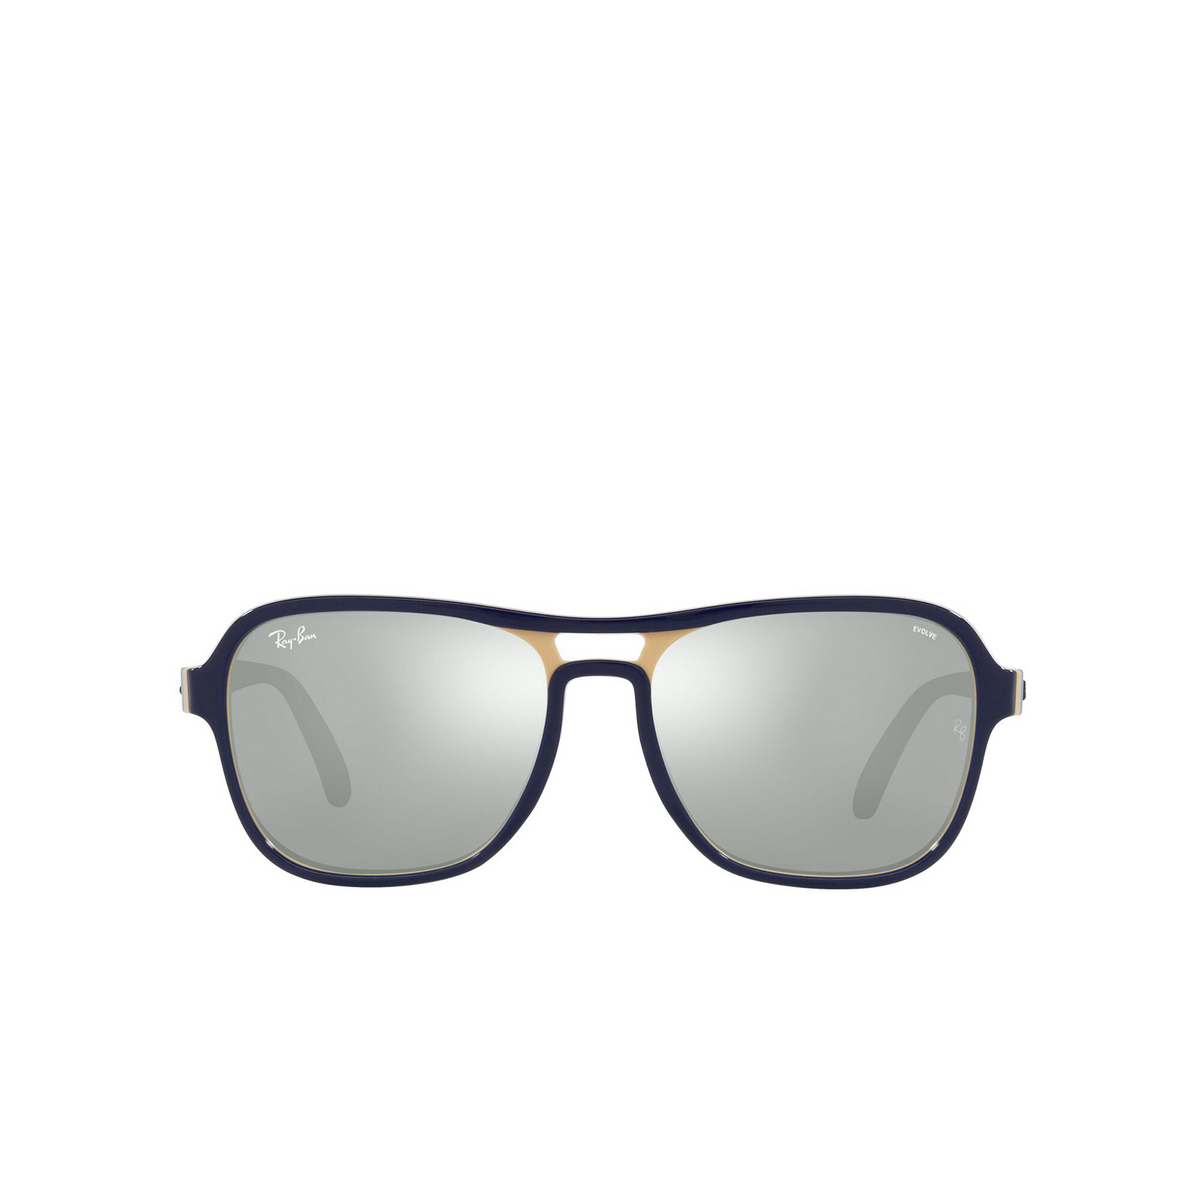 Ray-Ban® Square Sunglasses: State Side RB4356 color Blu Creamy Light Blu 6546W3 - front view.